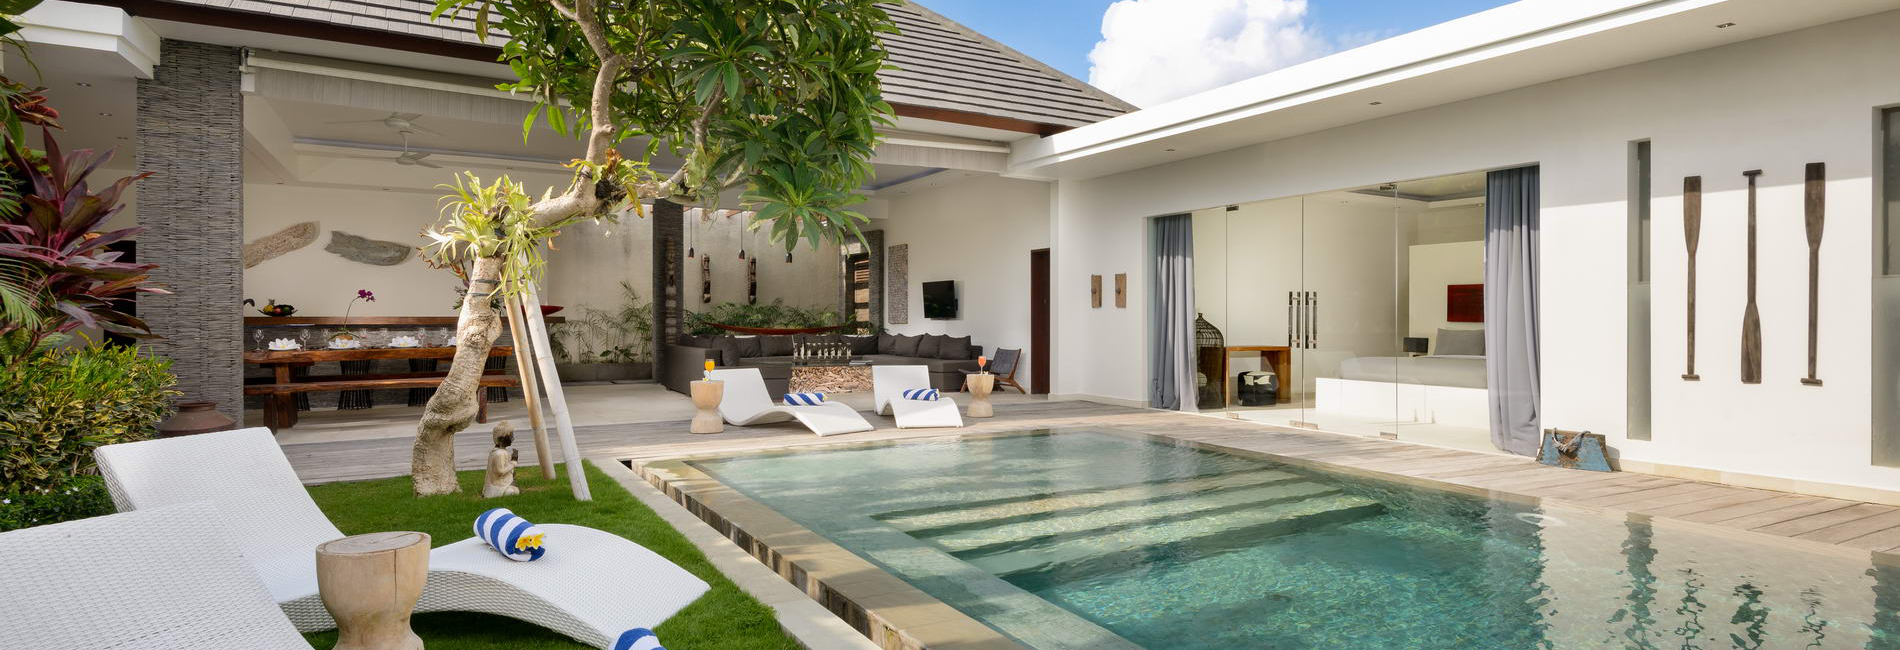 Villa Kyah 3 bedroom villa in Seminyak. Photo by Bali Villas Online.